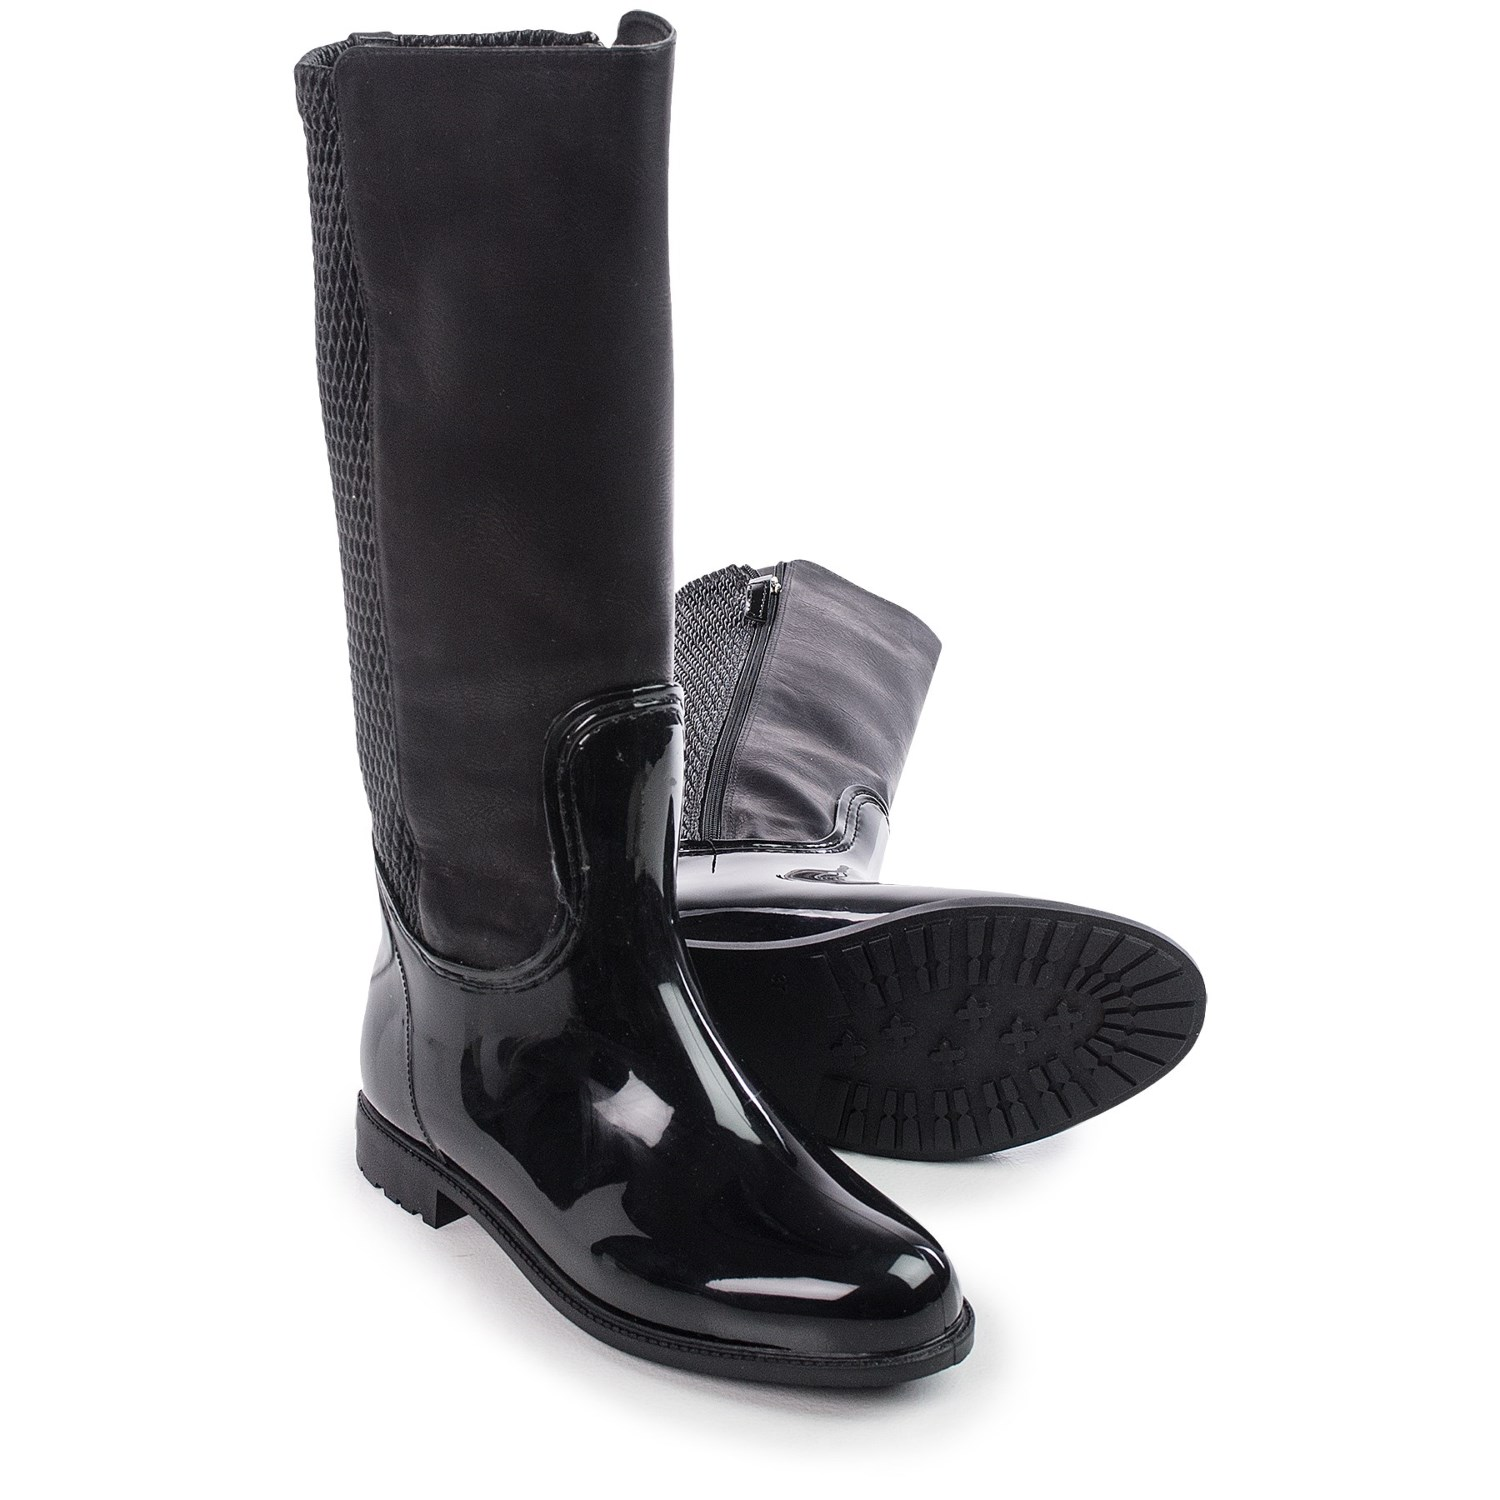 aquatherm by santana canada frozen boots for